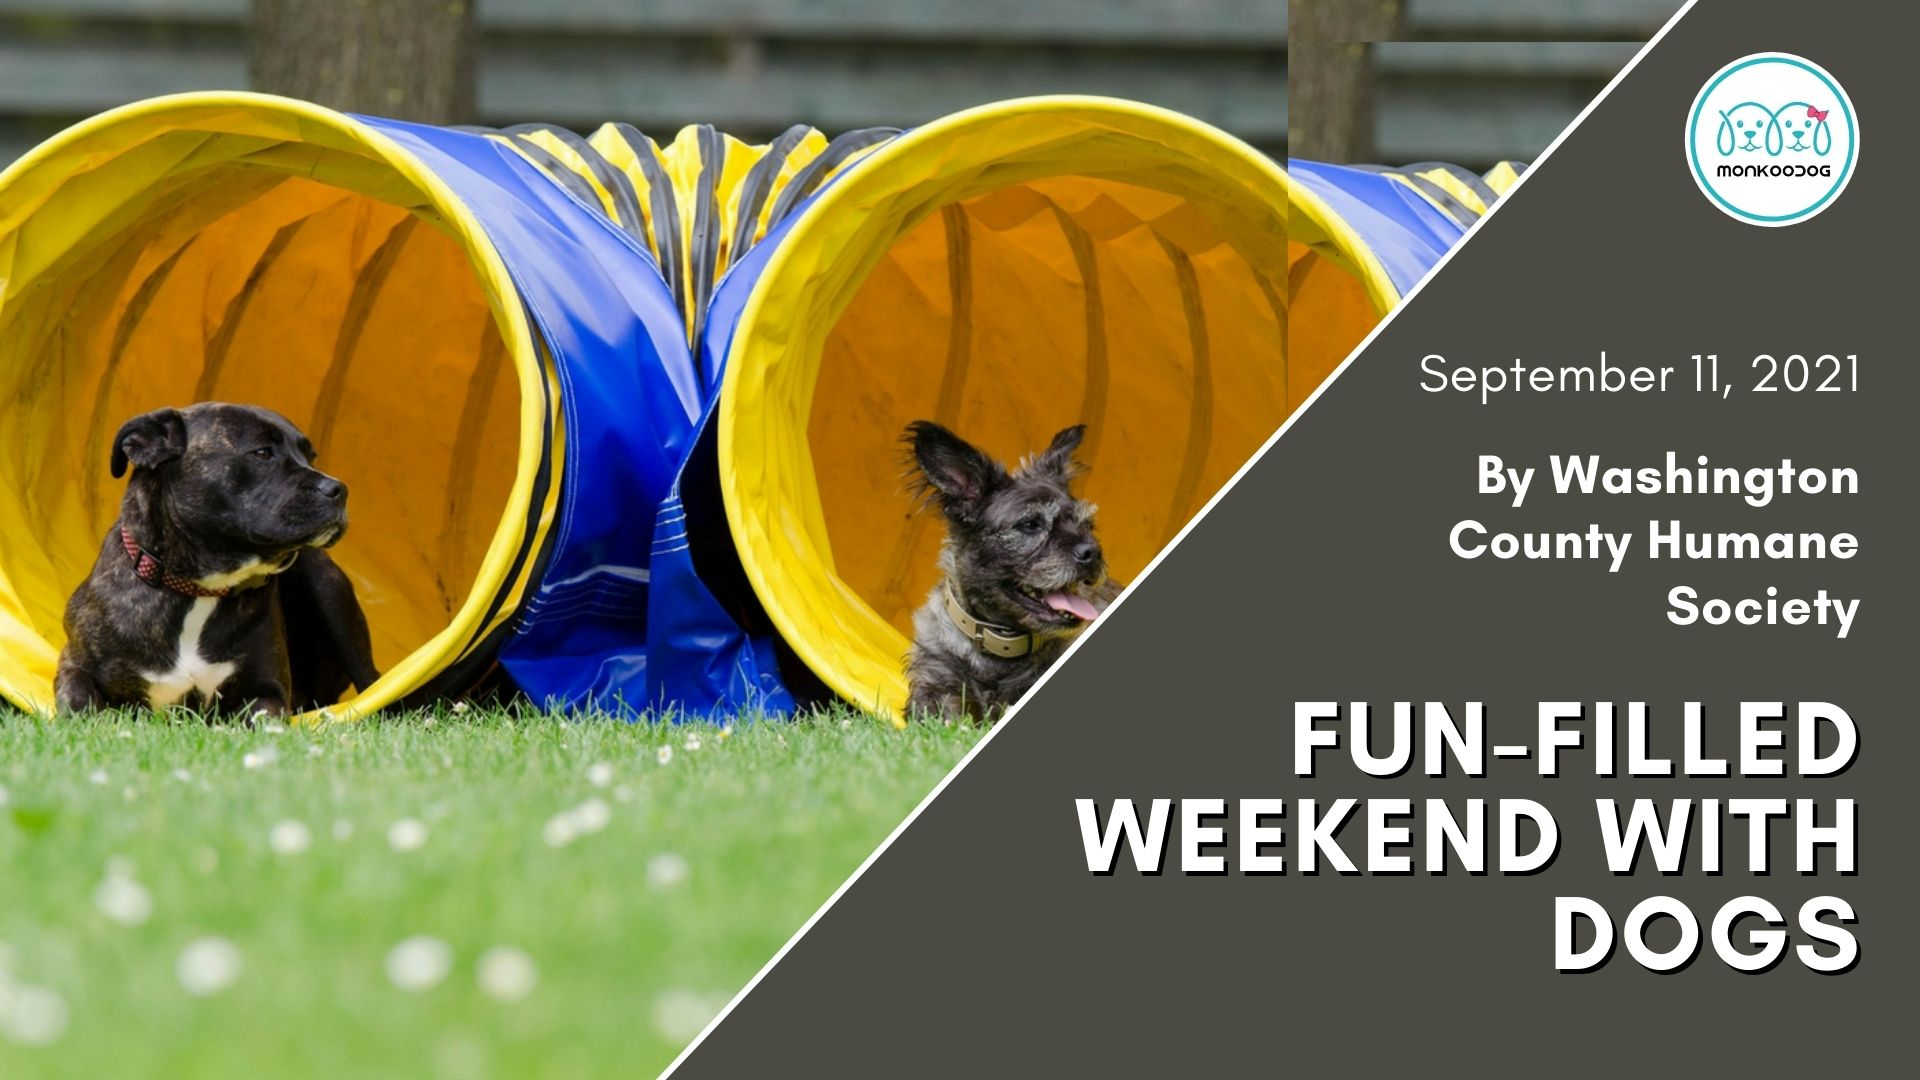 Upcoming dog events Paws in the Park Dog Walk and Fun-filled Festivities By Washington County Humane Society.